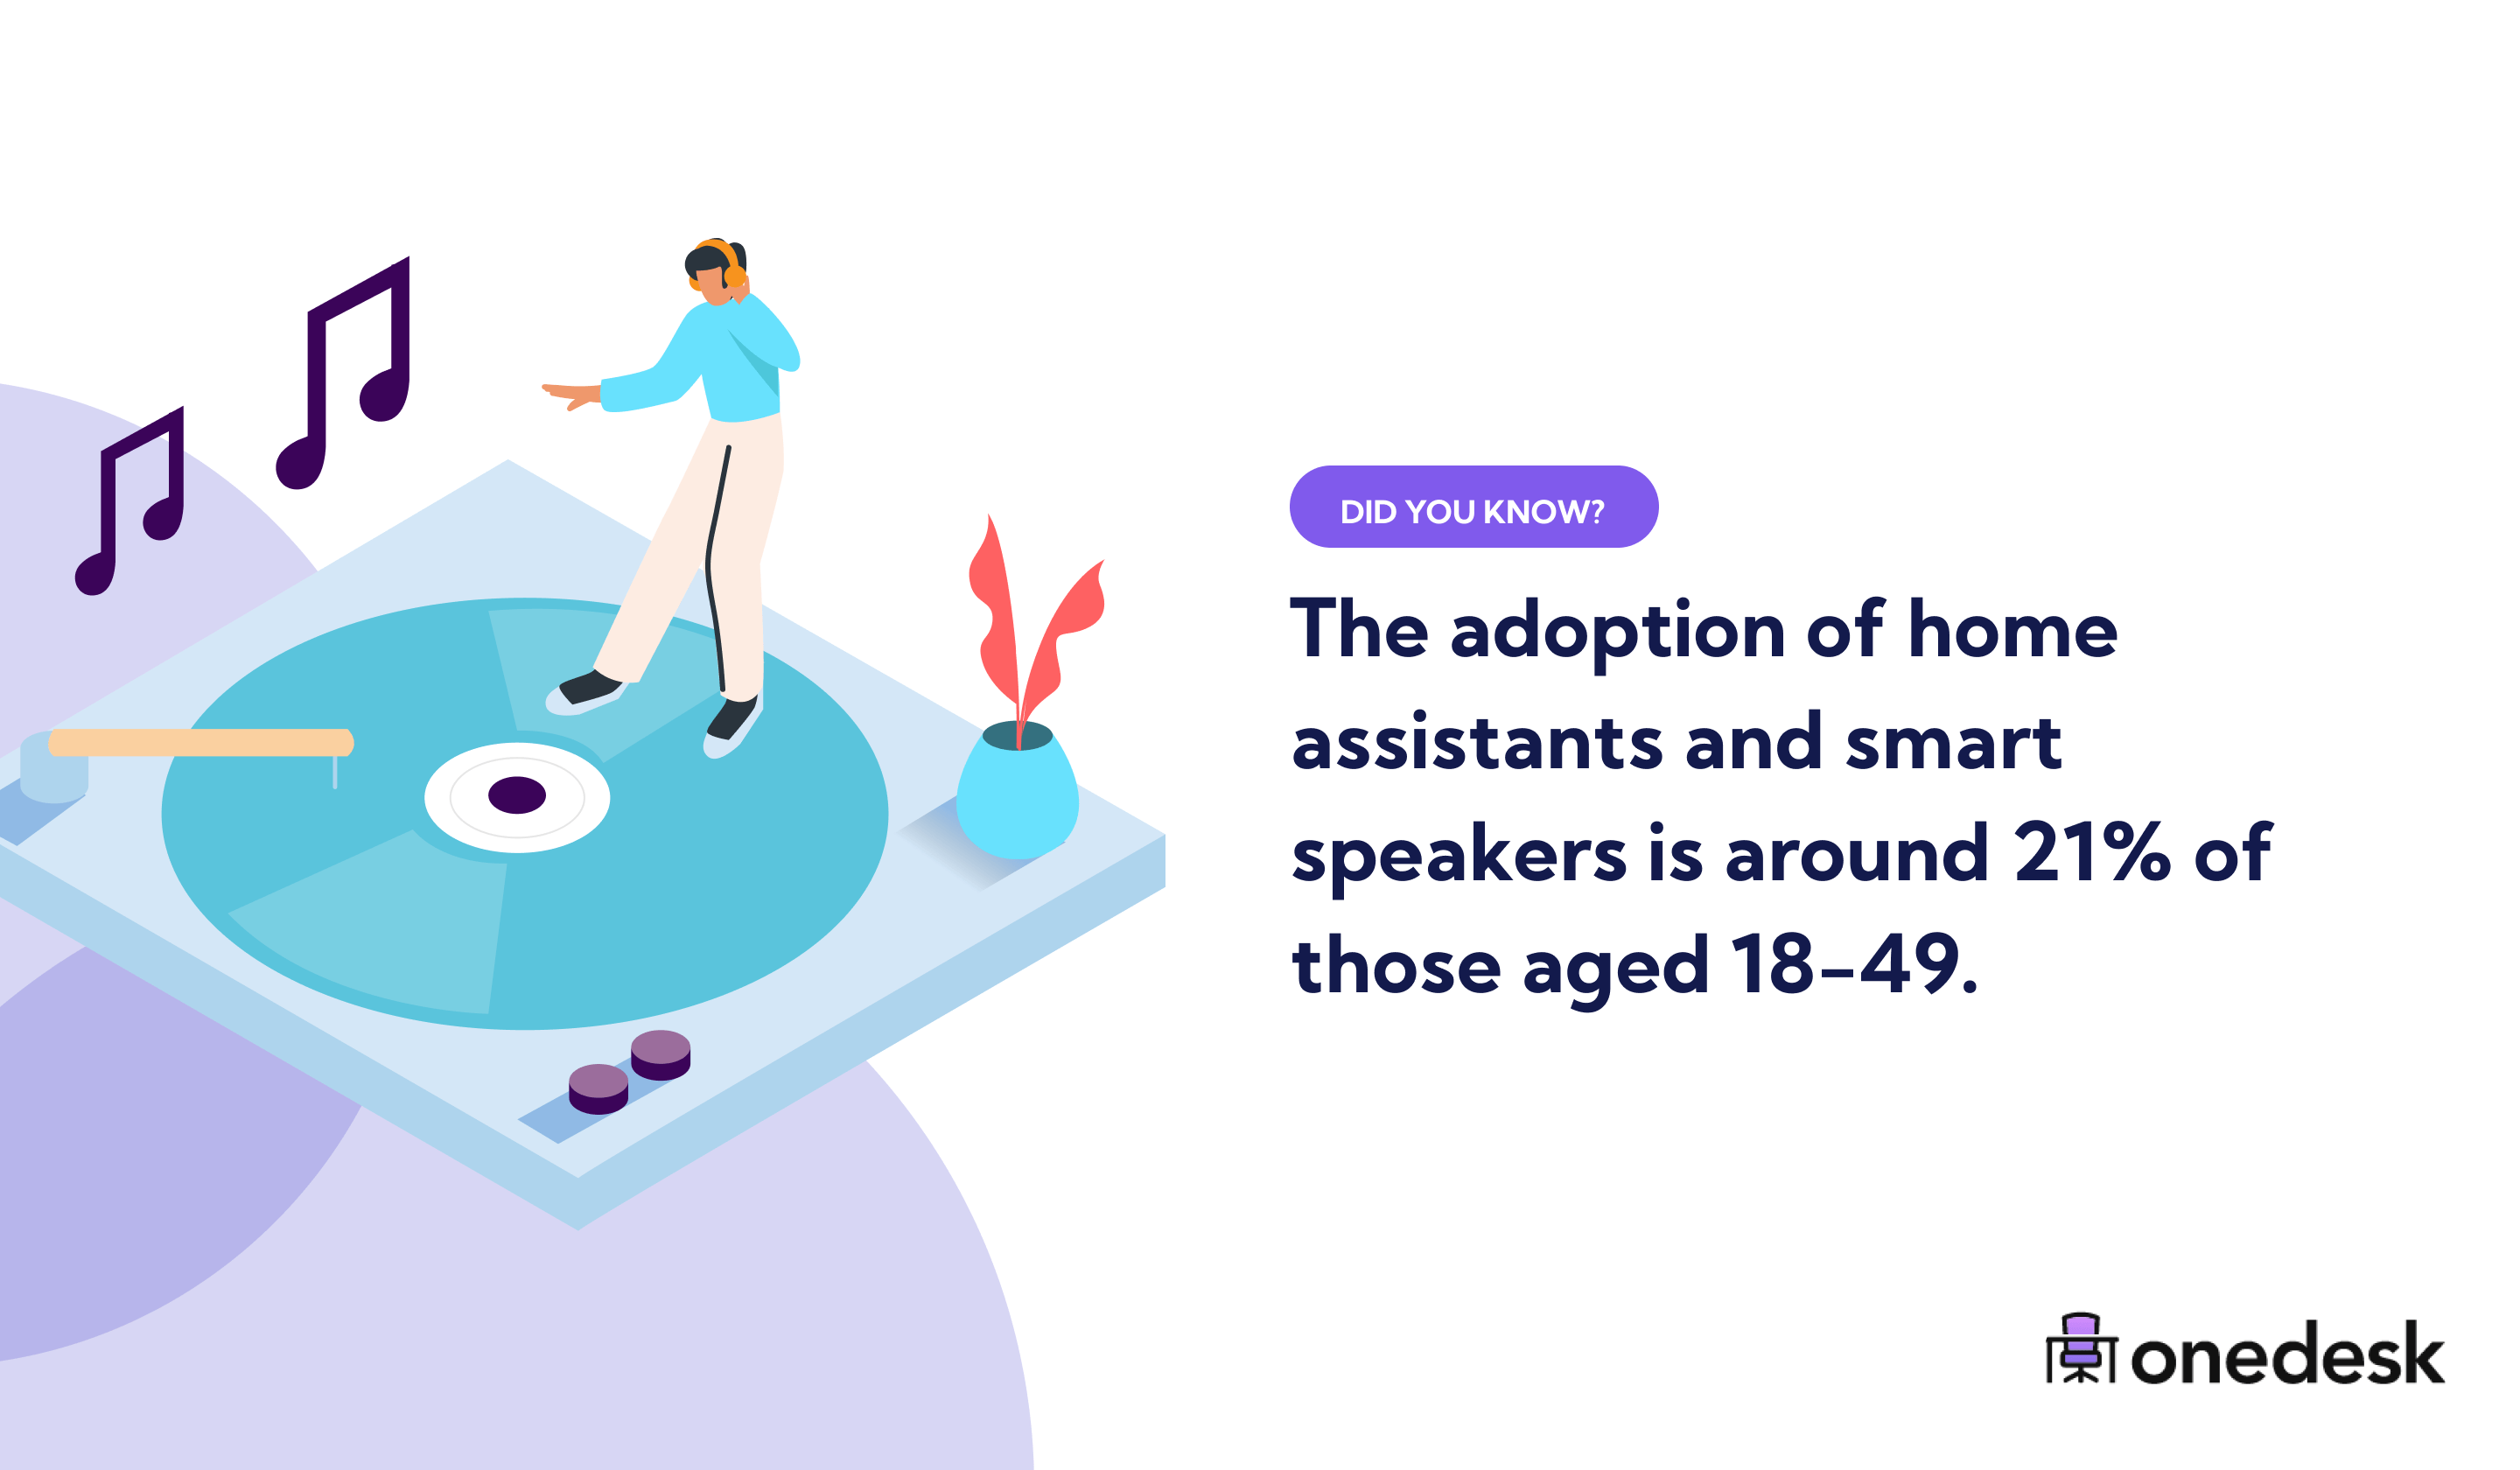 adoption of home assistants and smart speakers